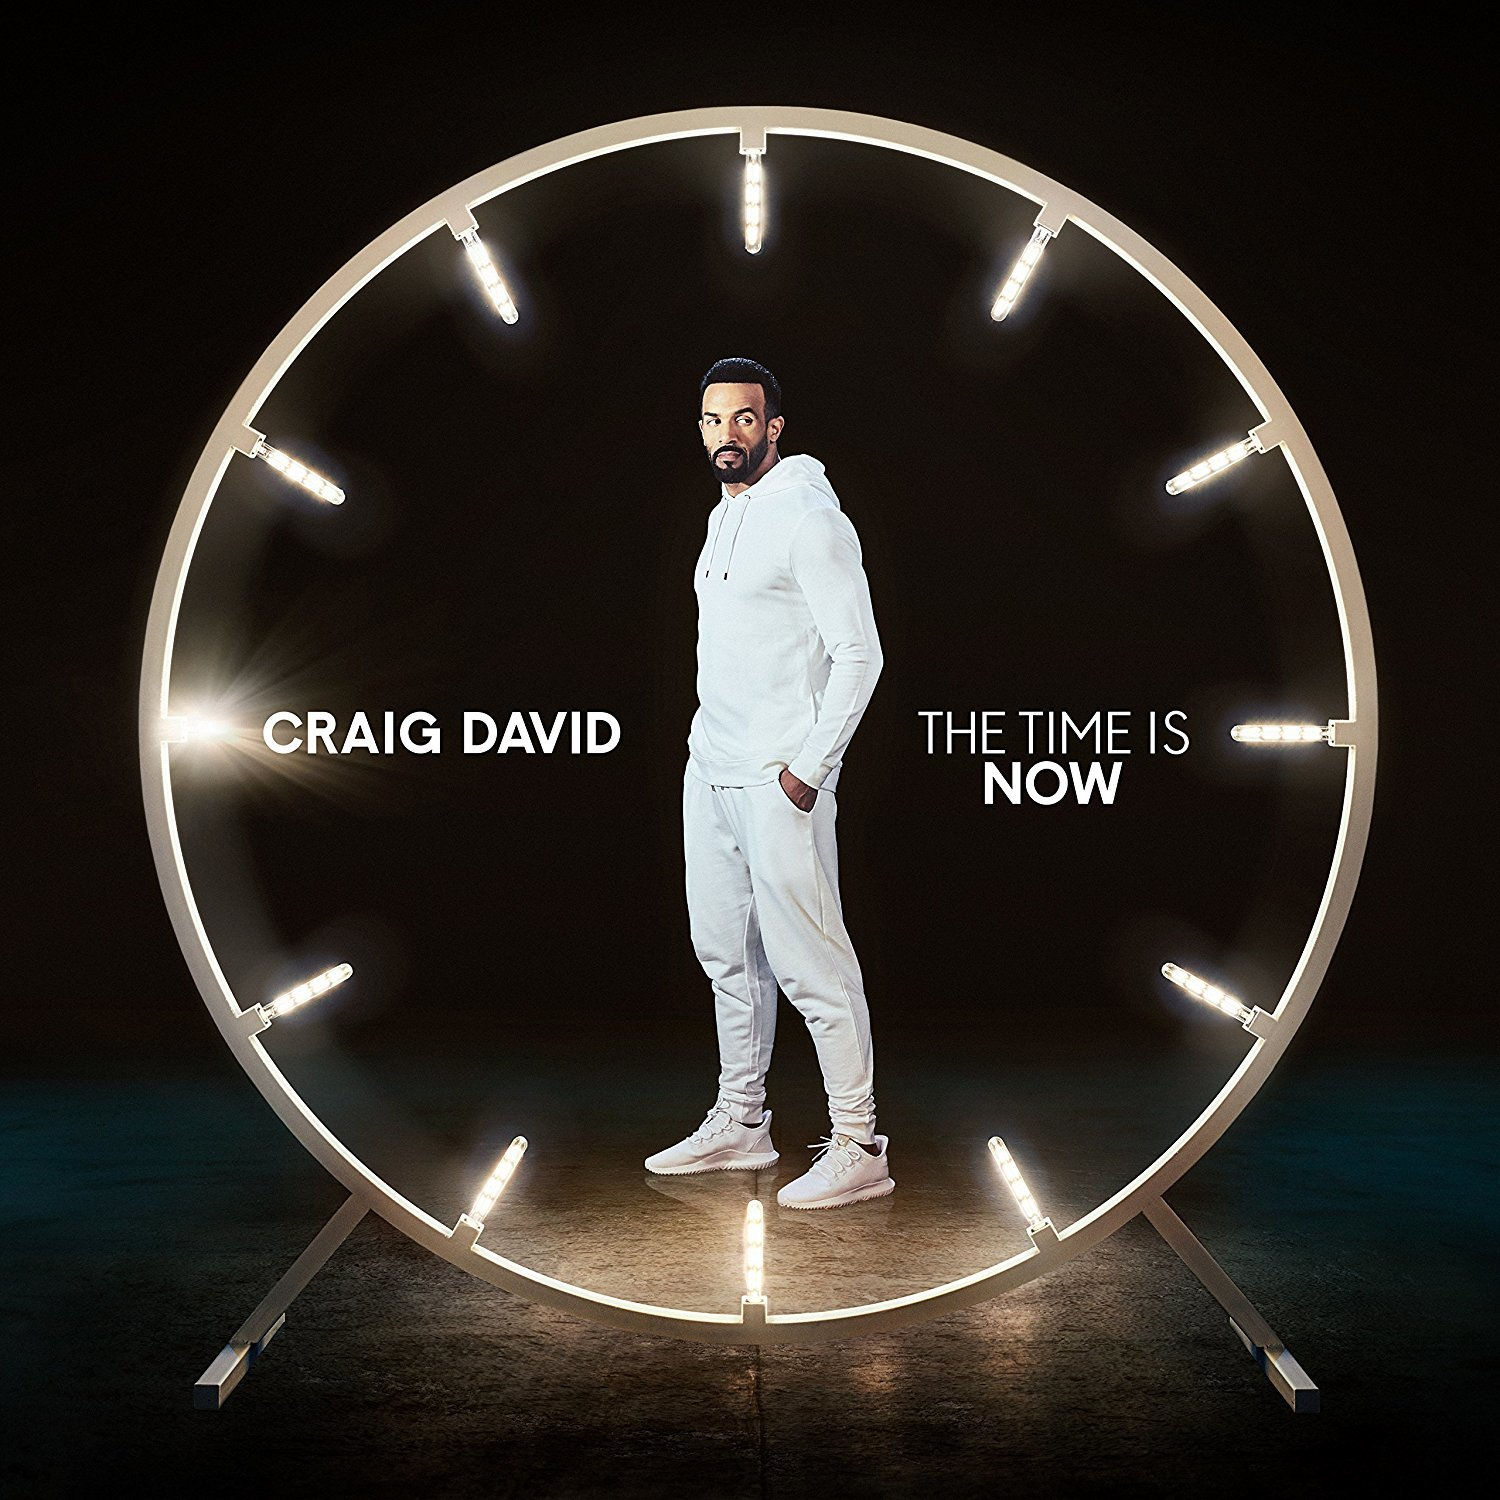 The Time Is Now by Craig David image